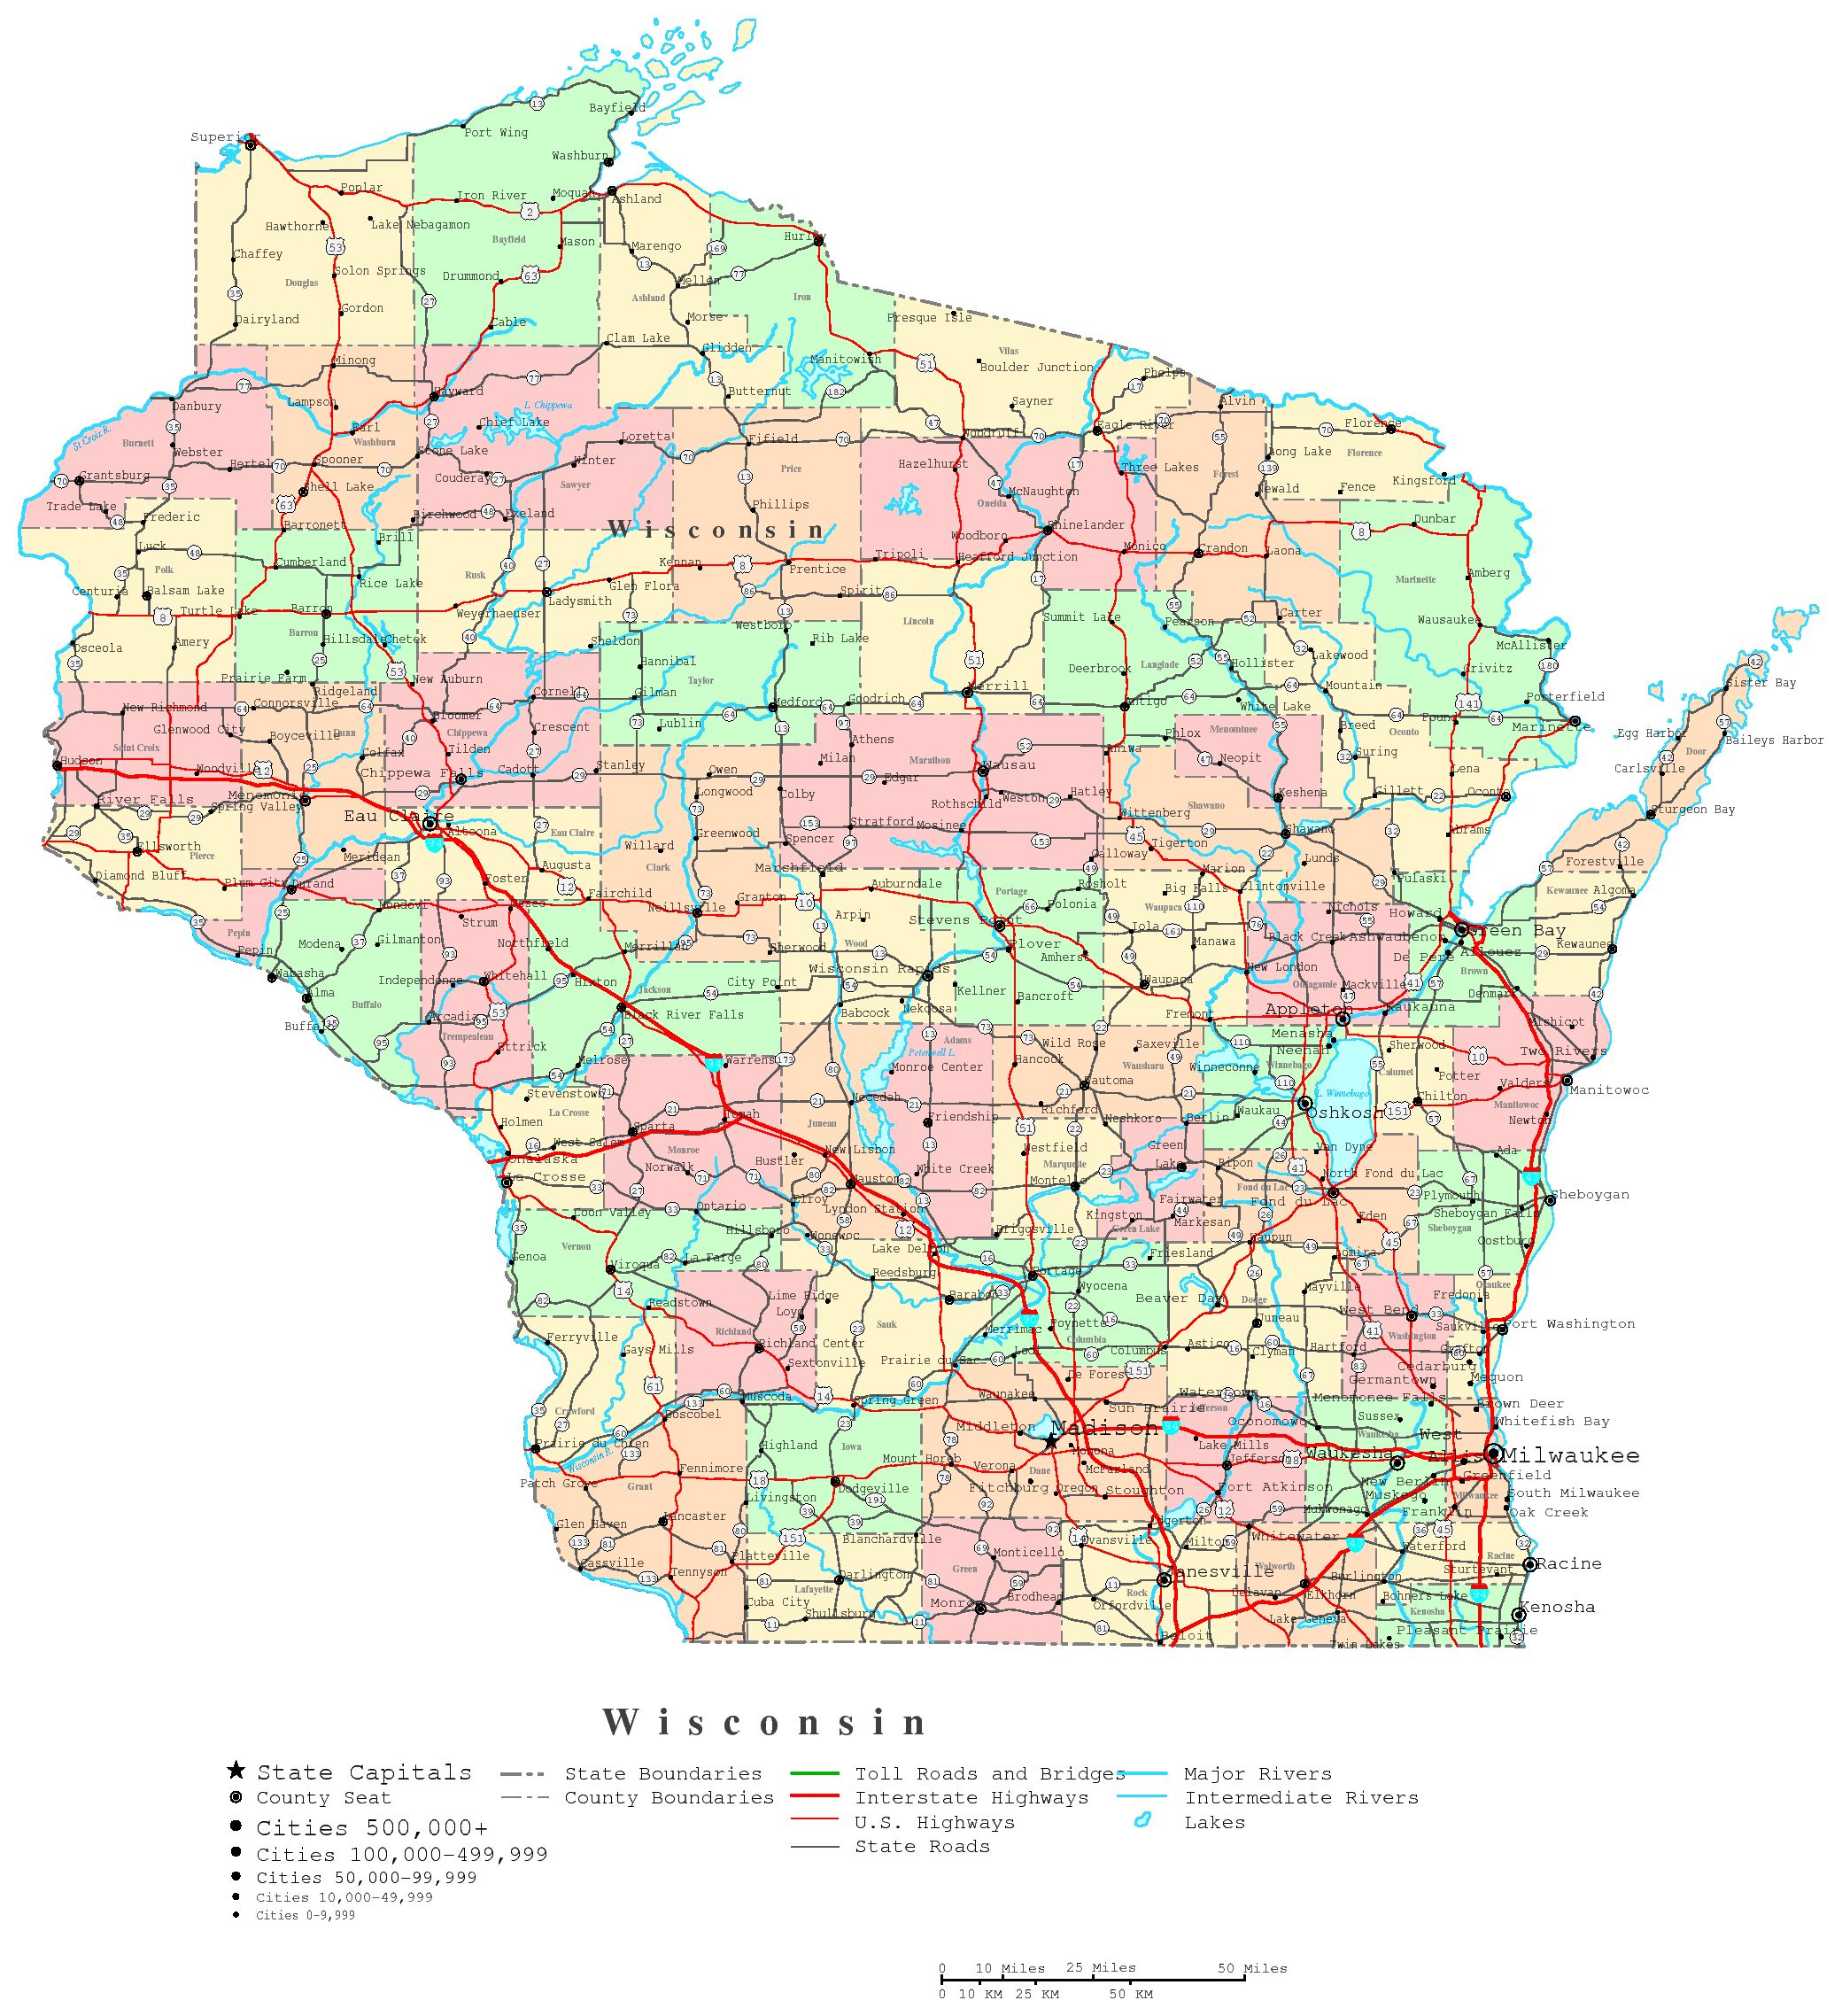 Wisconsin Map Online Maps Of Wisconsin State - Wisconsin state map of us